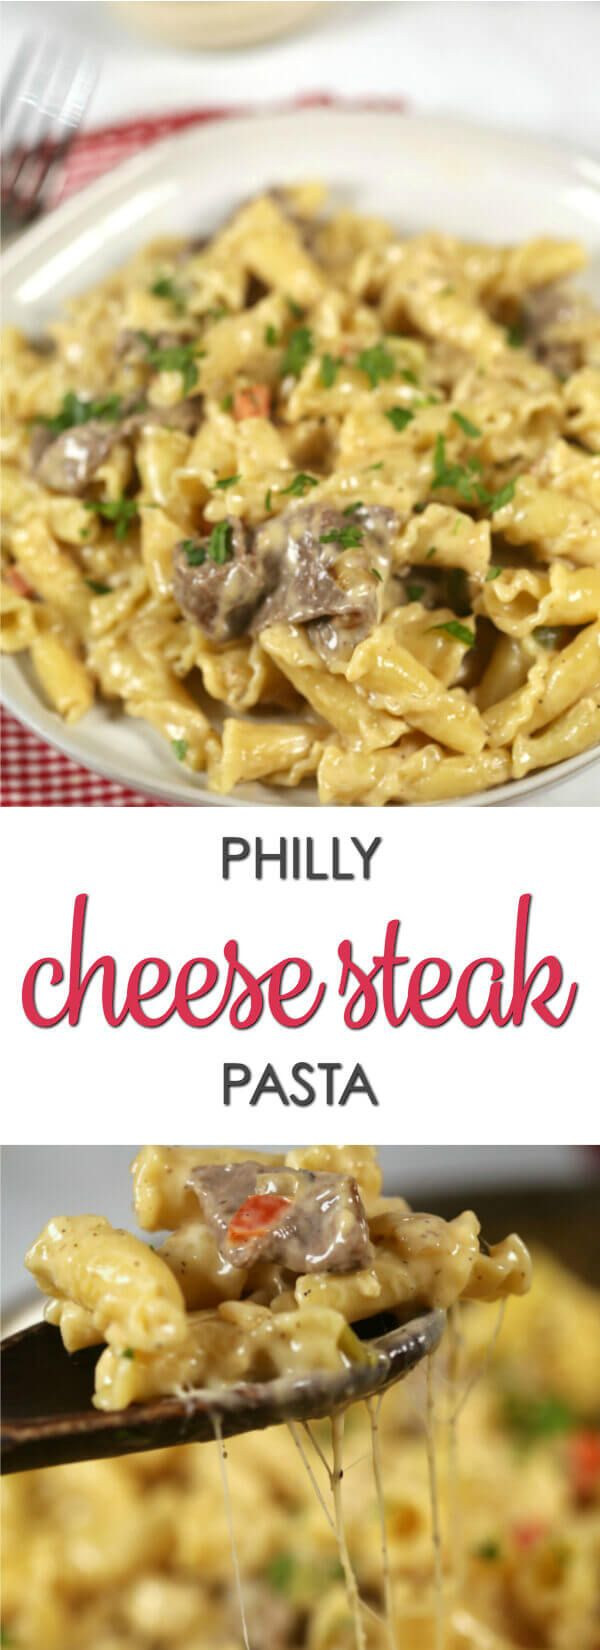 This recipe is a fun twist on the best Philly Cheese Steak recipe.It's easy to make and incredibly delicious. You have to try this Philly Cheese Steak Pasta. via @itsakeeperblog